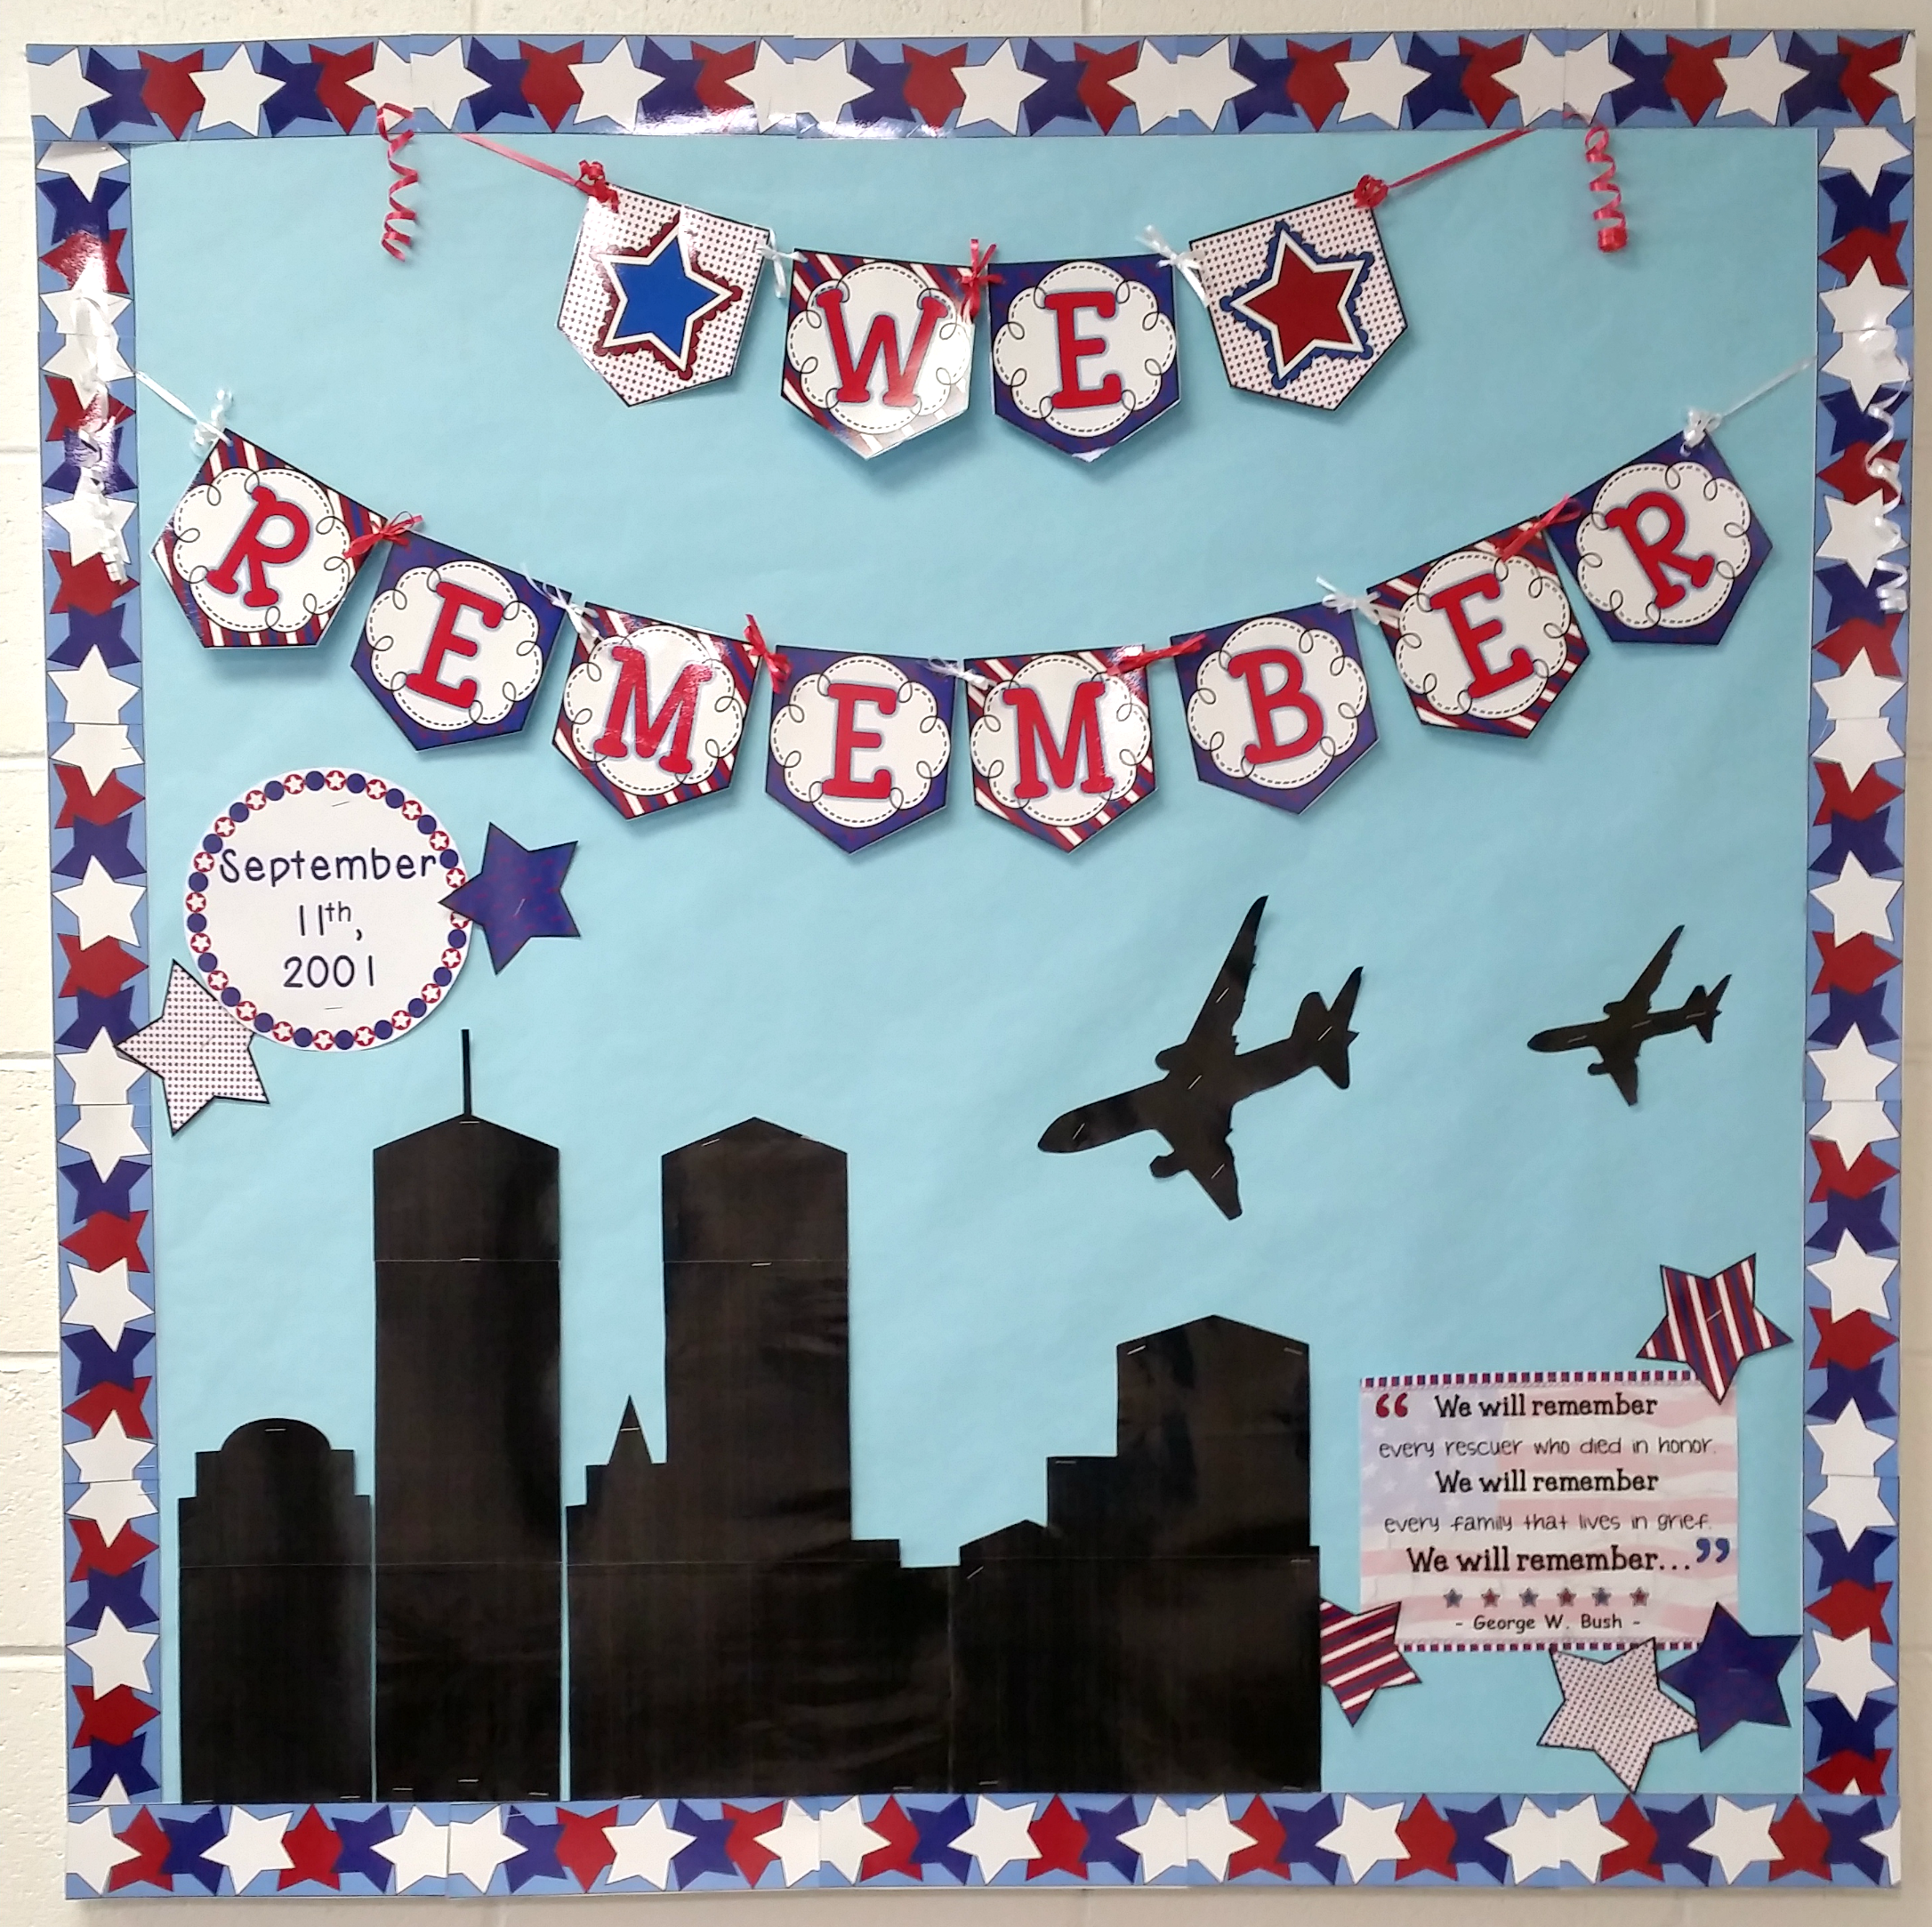 Patriot Day September 11th Bulletin Board Set 9 11 September B B Patriots Day History Fair History Fair Projects